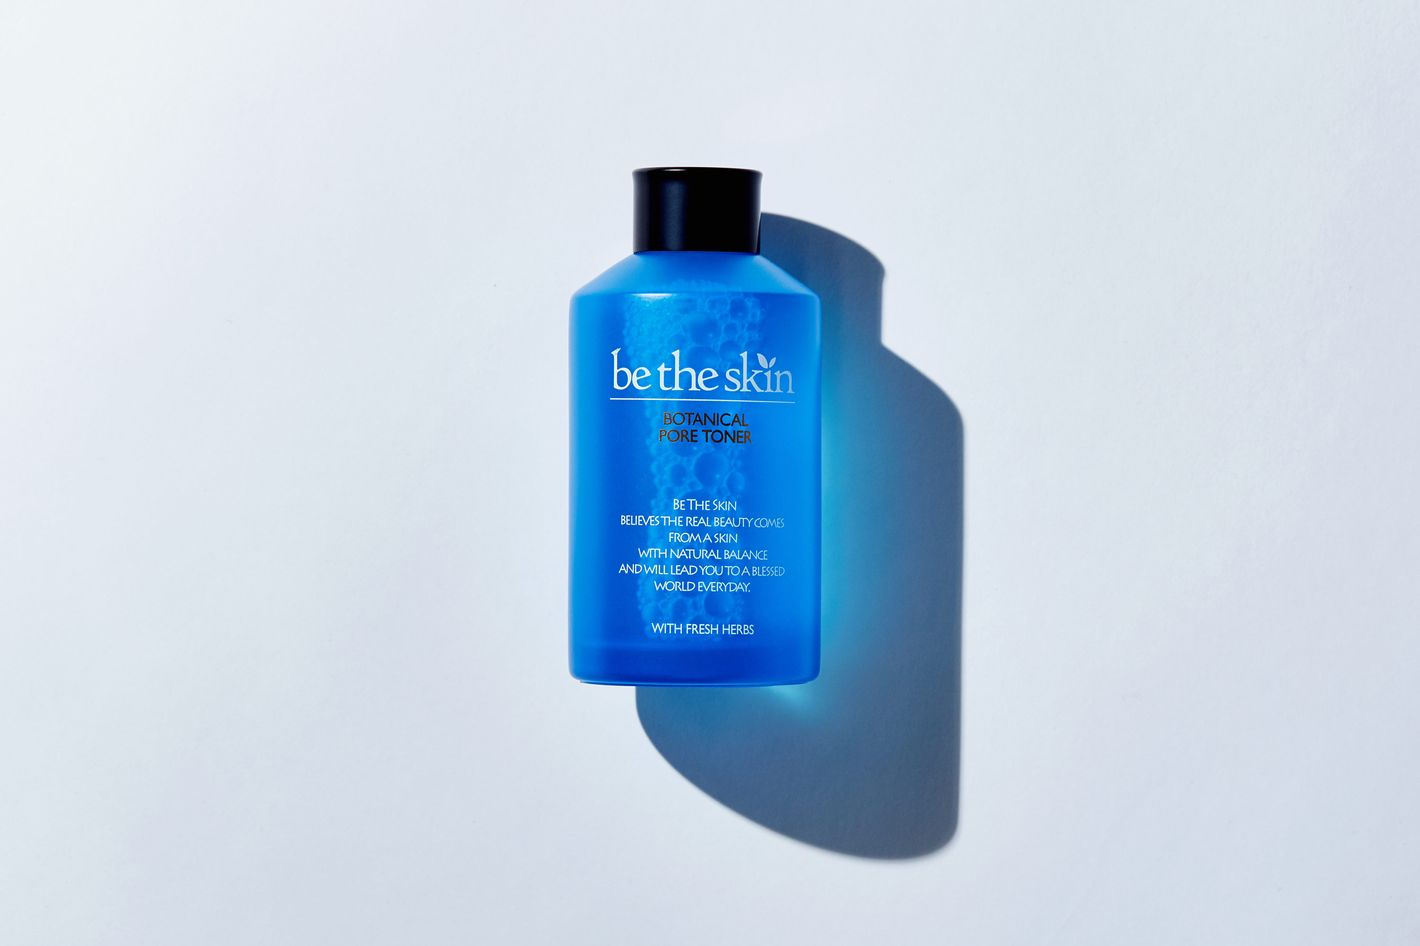 Be the Skin Botanical Pore Toner